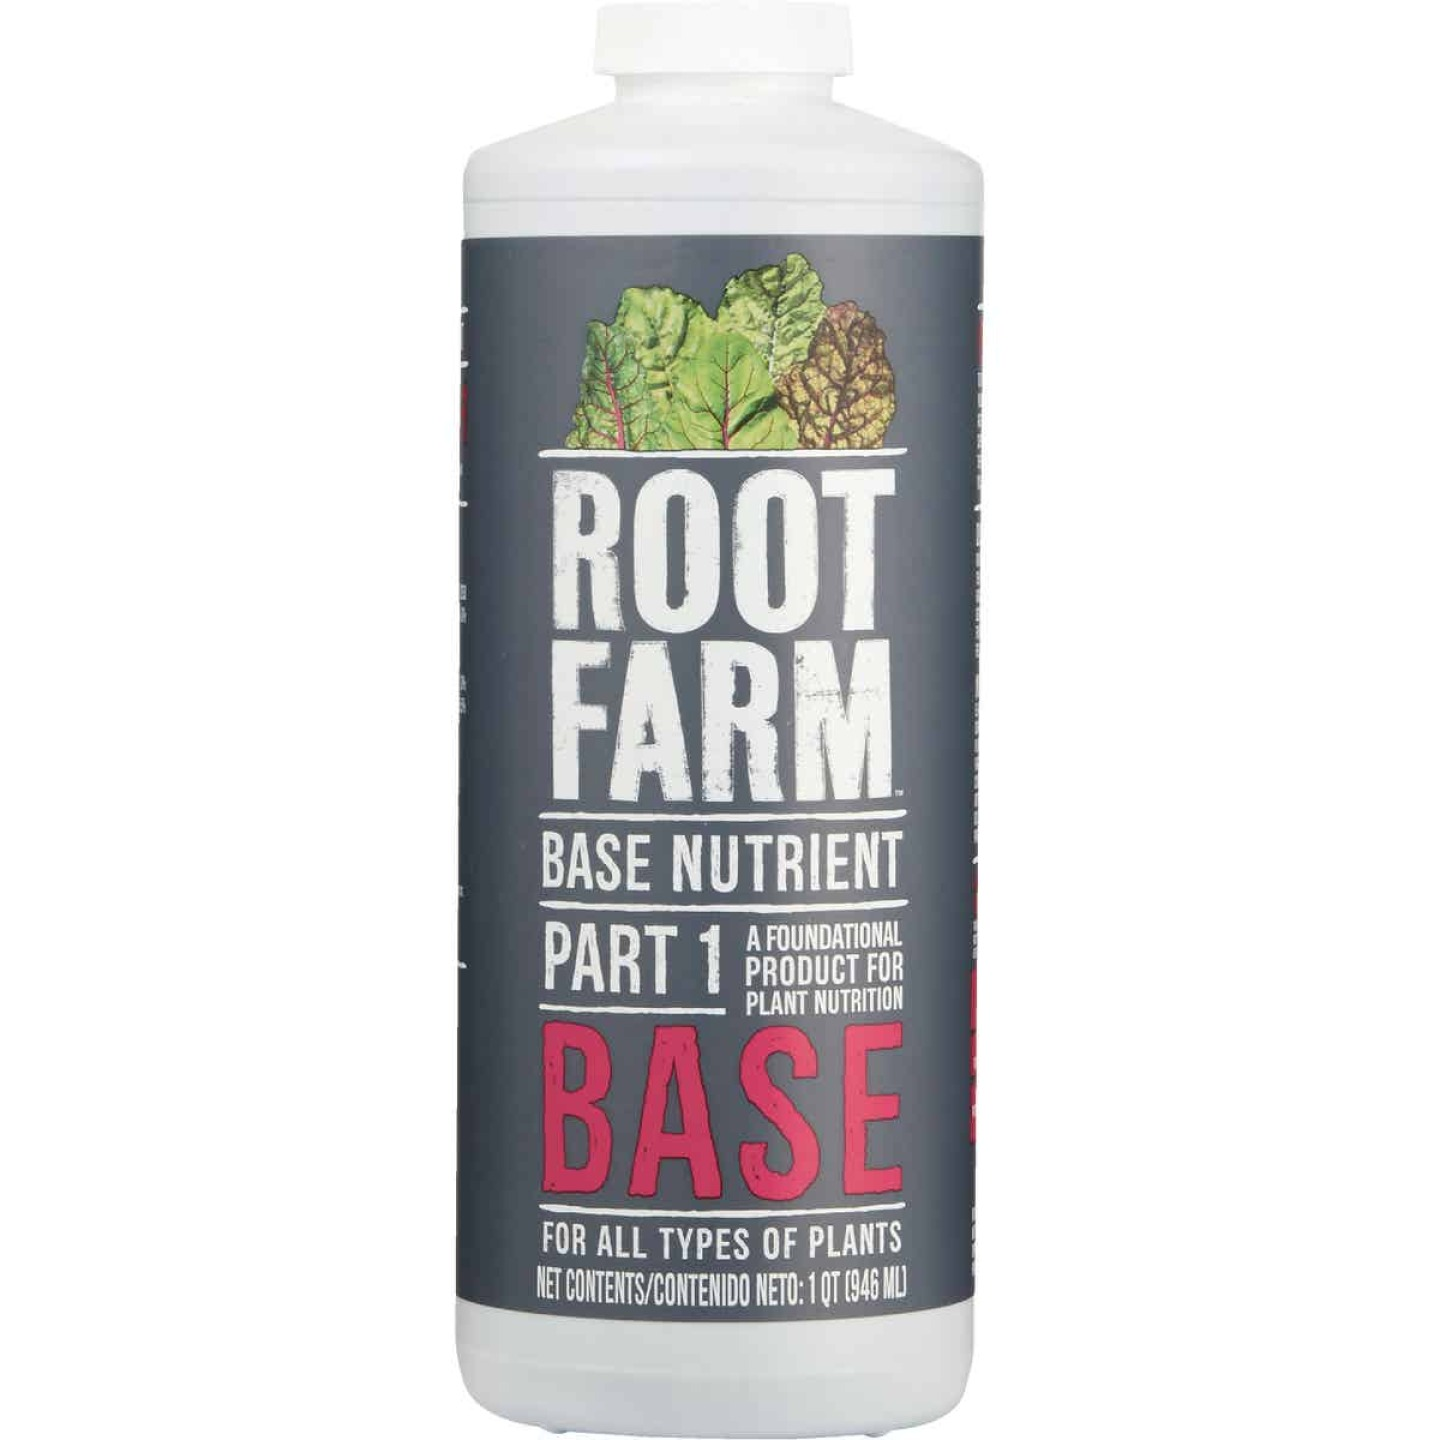 Root Farm 1 Qt. Concentrated Liquid All-Purpose Base Nutrient Part 1 Image 2